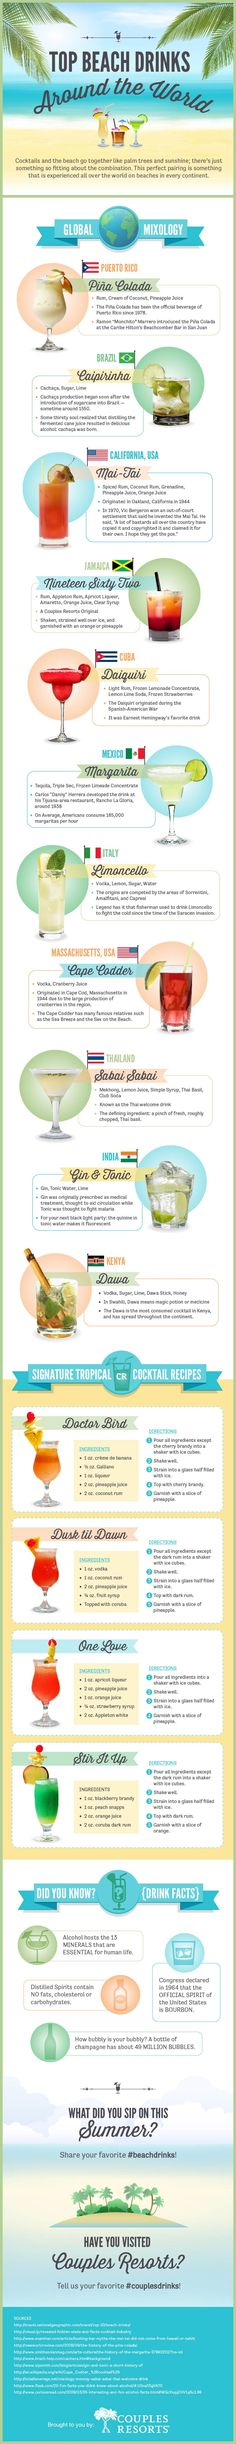 Top Beach Drinks from around the World. Life's a Beach at Beach Bliss Living: http://www.pinterest.com/beachblisslivin/lifes-a-beach/